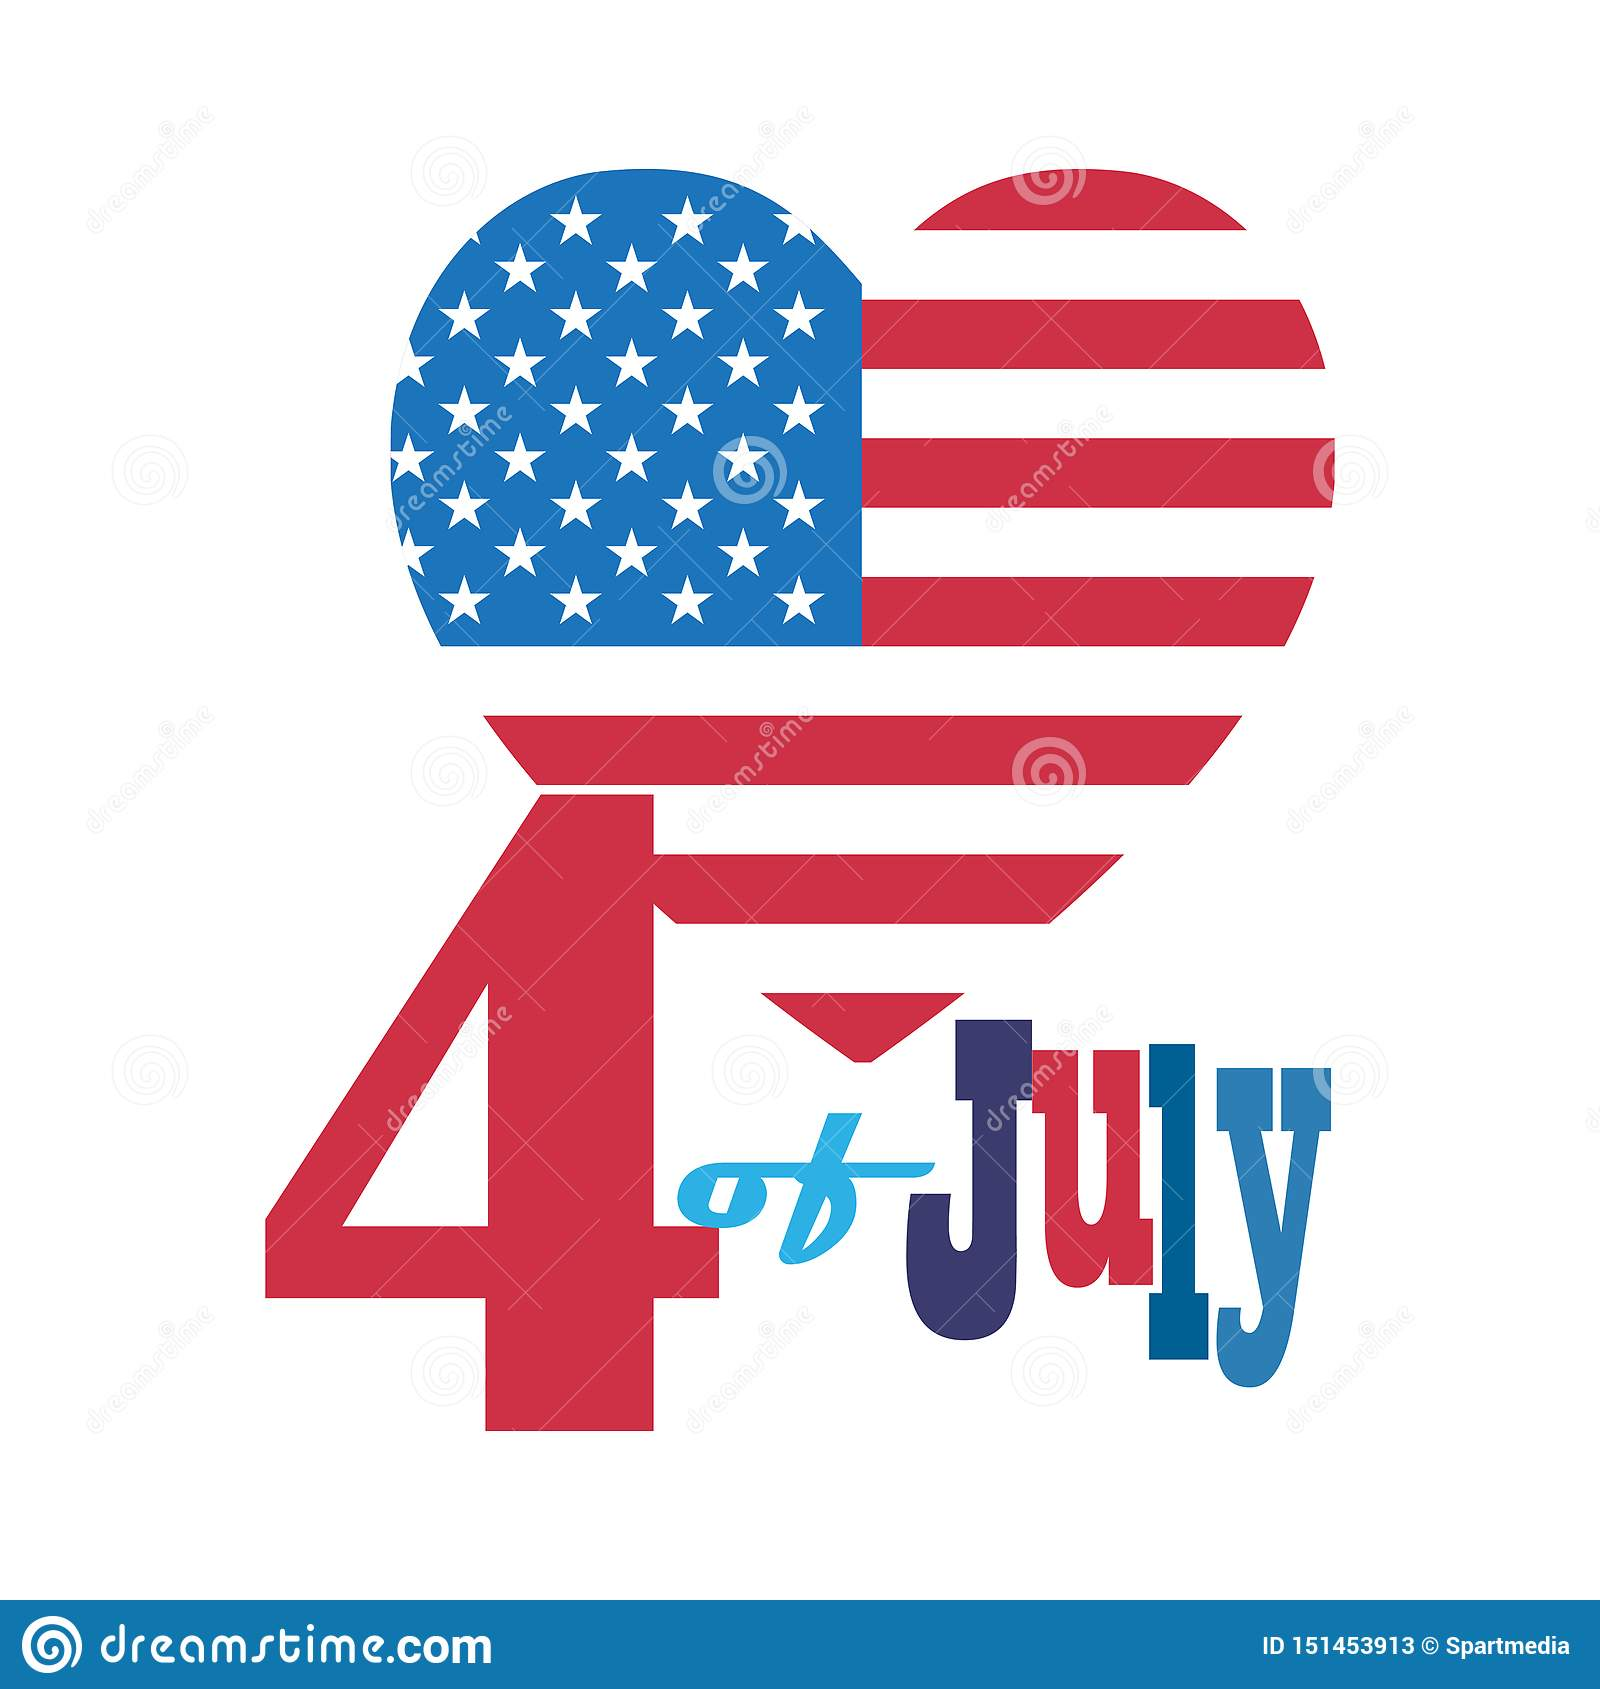 4th of July Happy Independence Day symbols icons set Patriotic American flag, stars fireworks confetti balloons ribbon banner